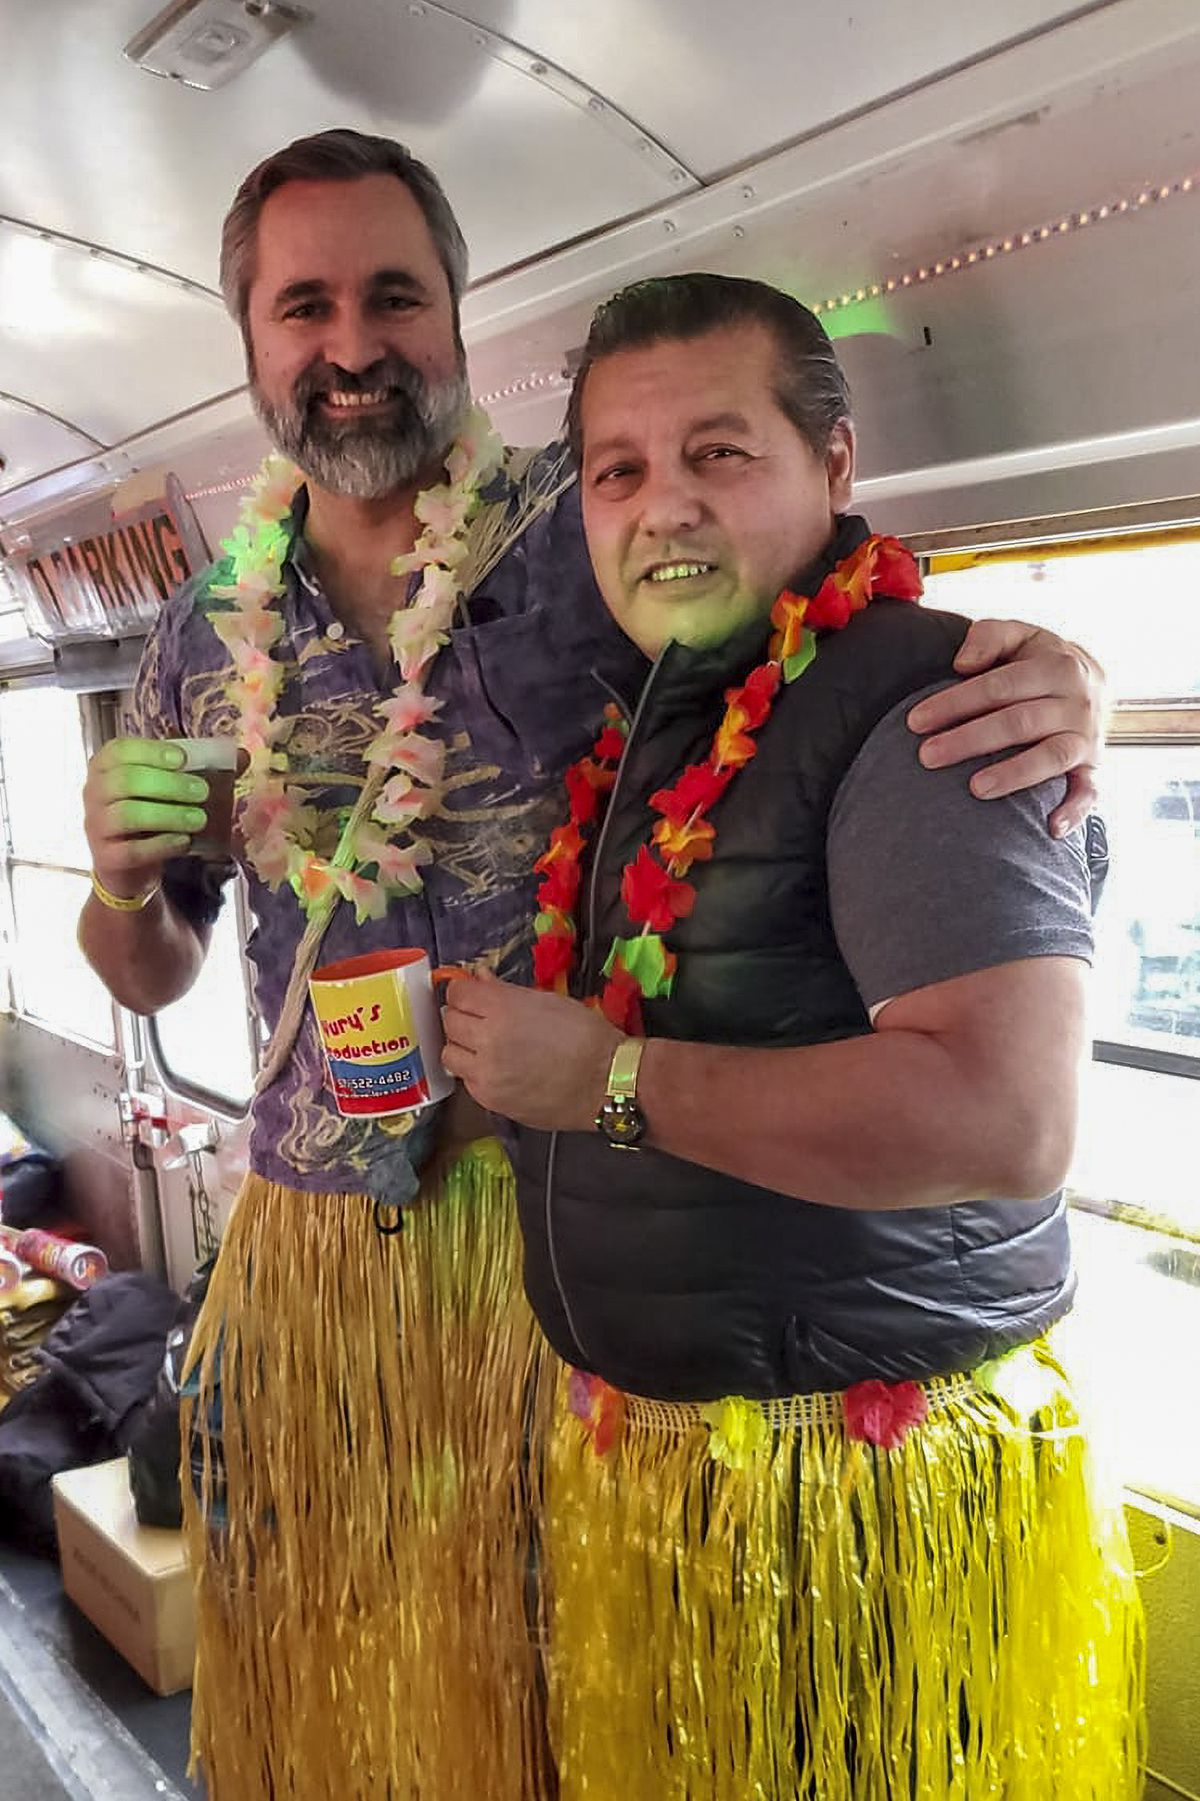 La Chiva Loca's owner, Yury Arias (right) with a partygoer for a Hawaii themed party in the winter before the pandemic.